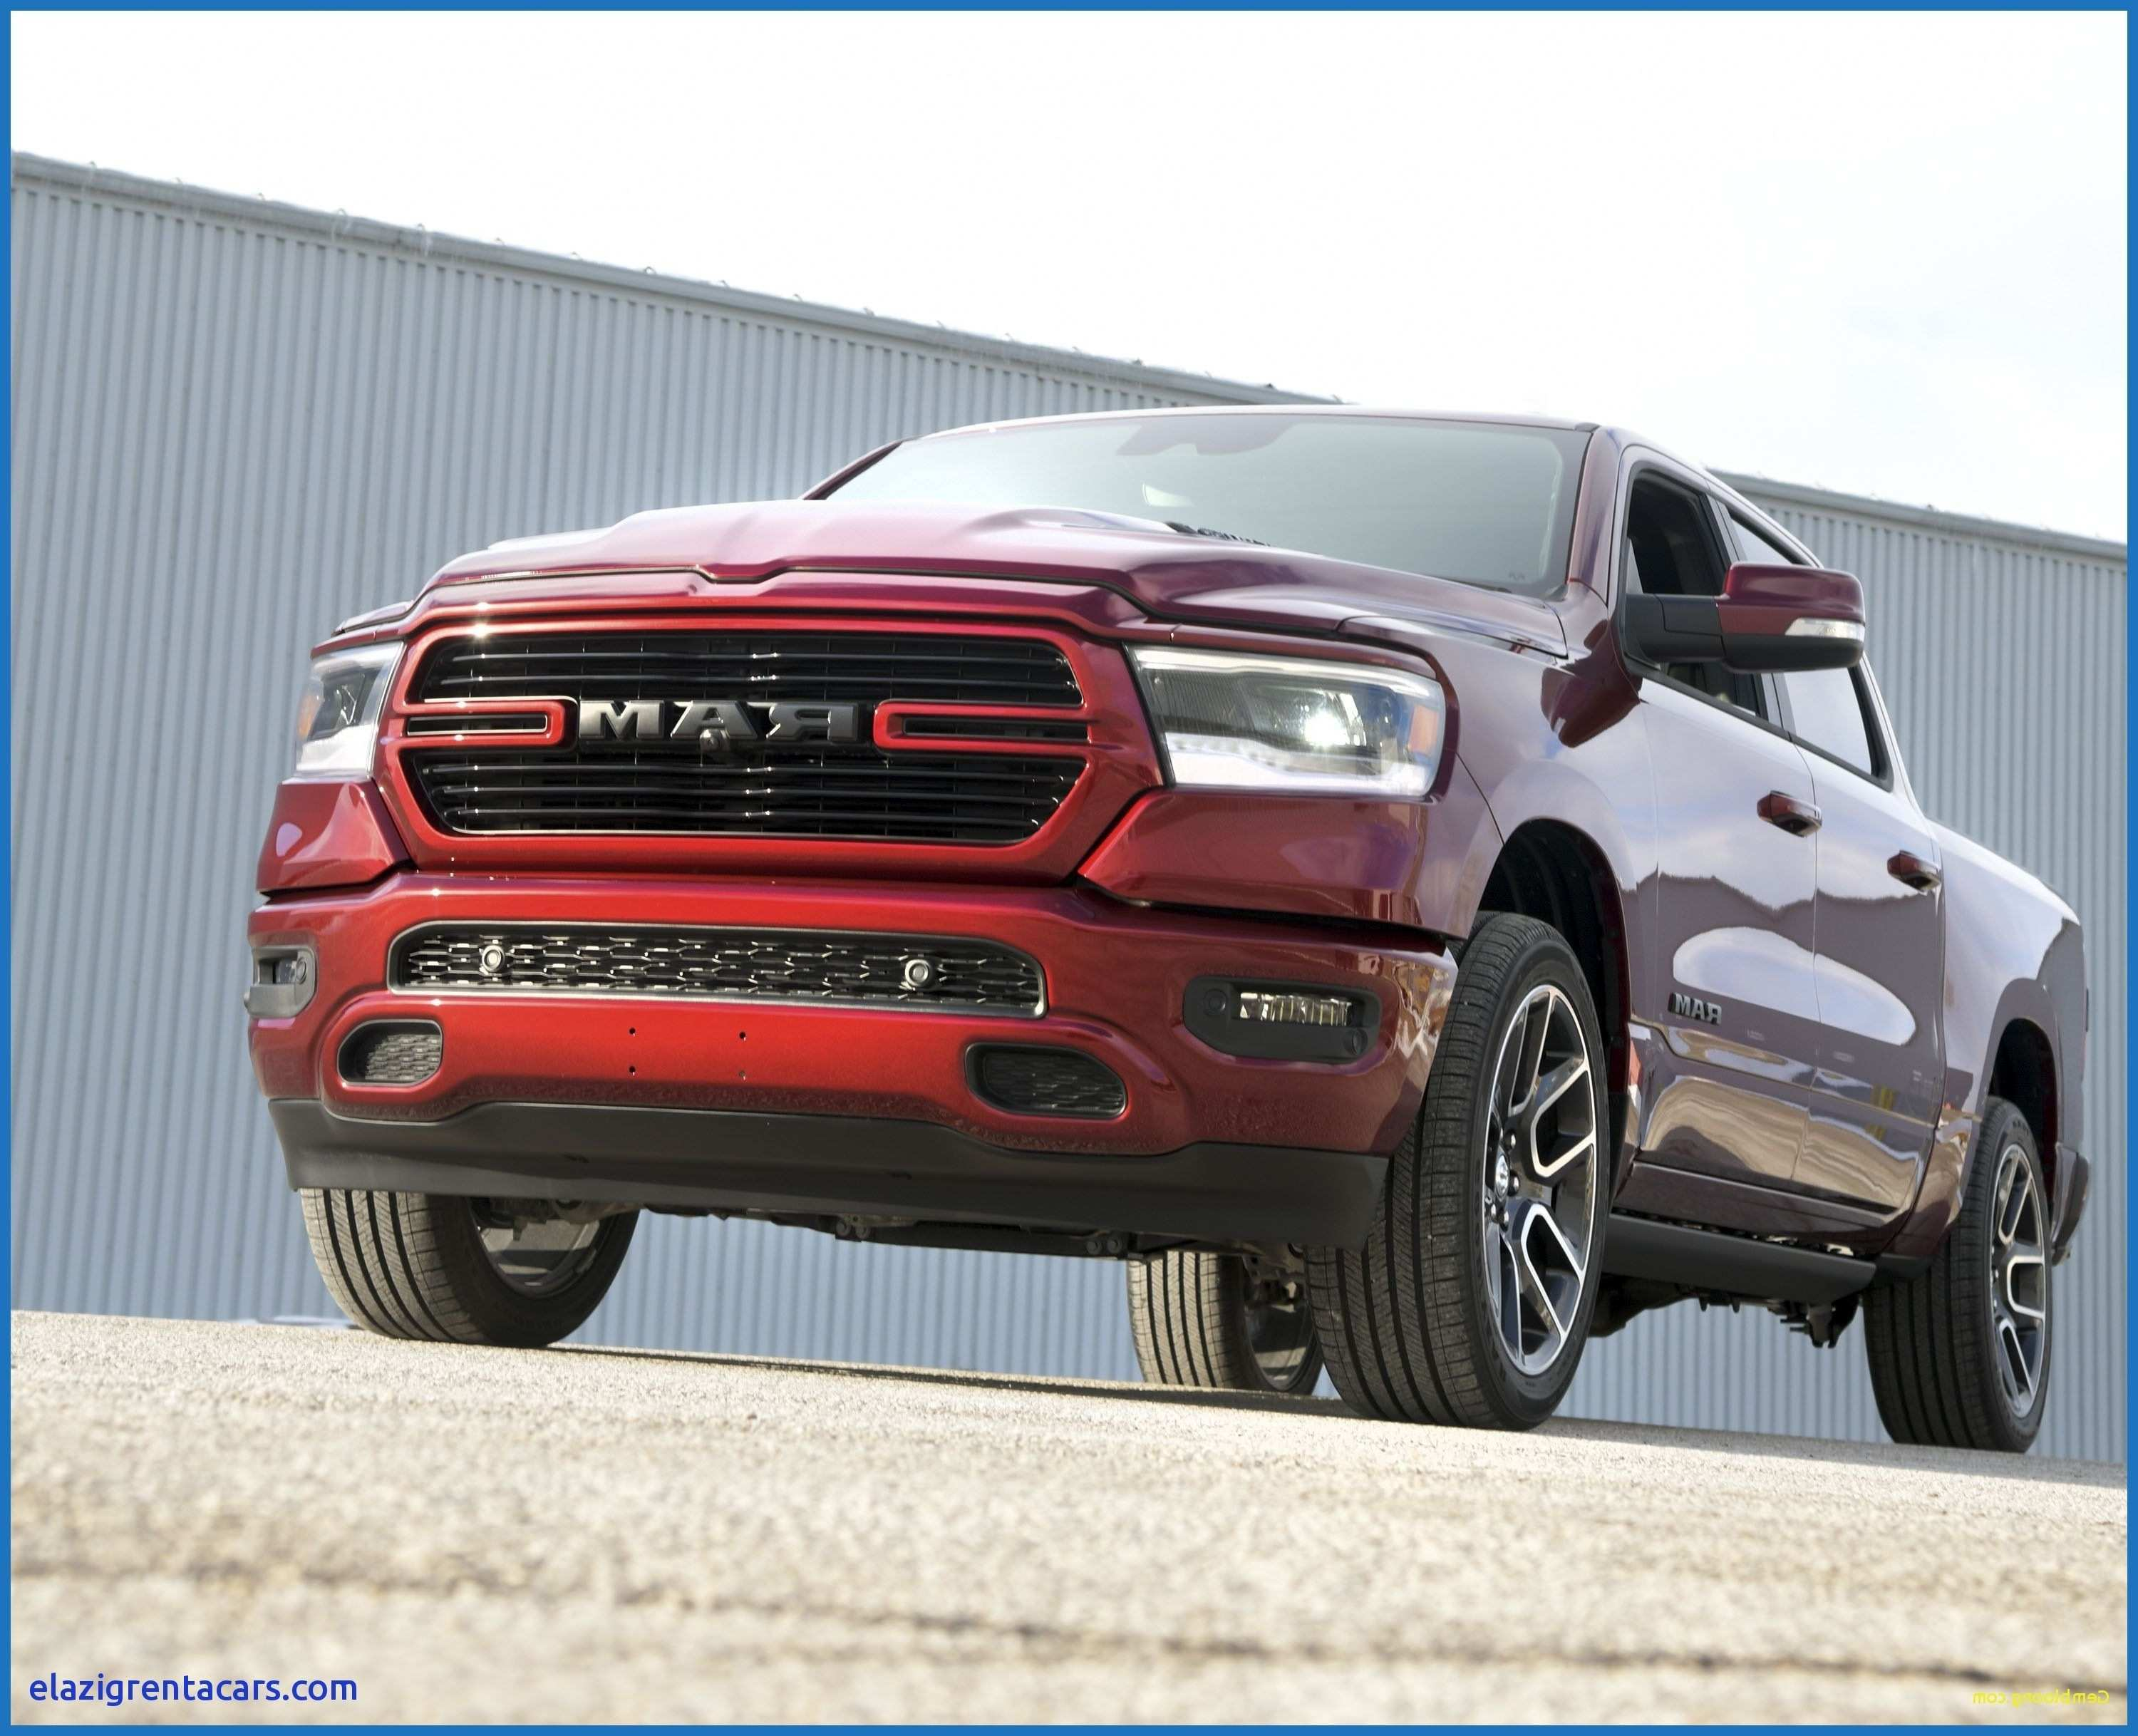 71 The 2020 Dodge Durango Diesel Srt8 Interior